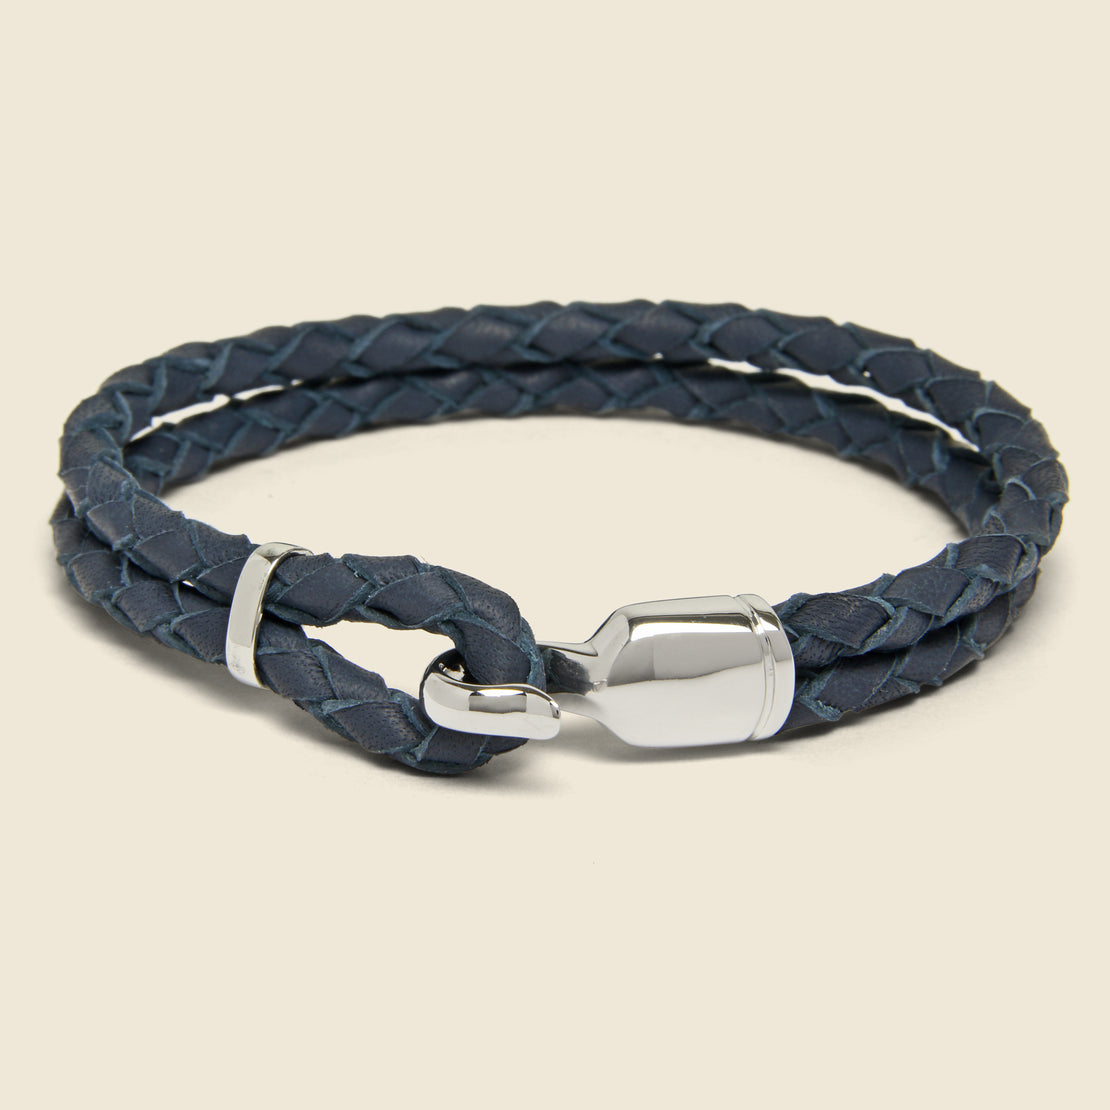 Miansai Single Trice Bracelet - Navy Blue